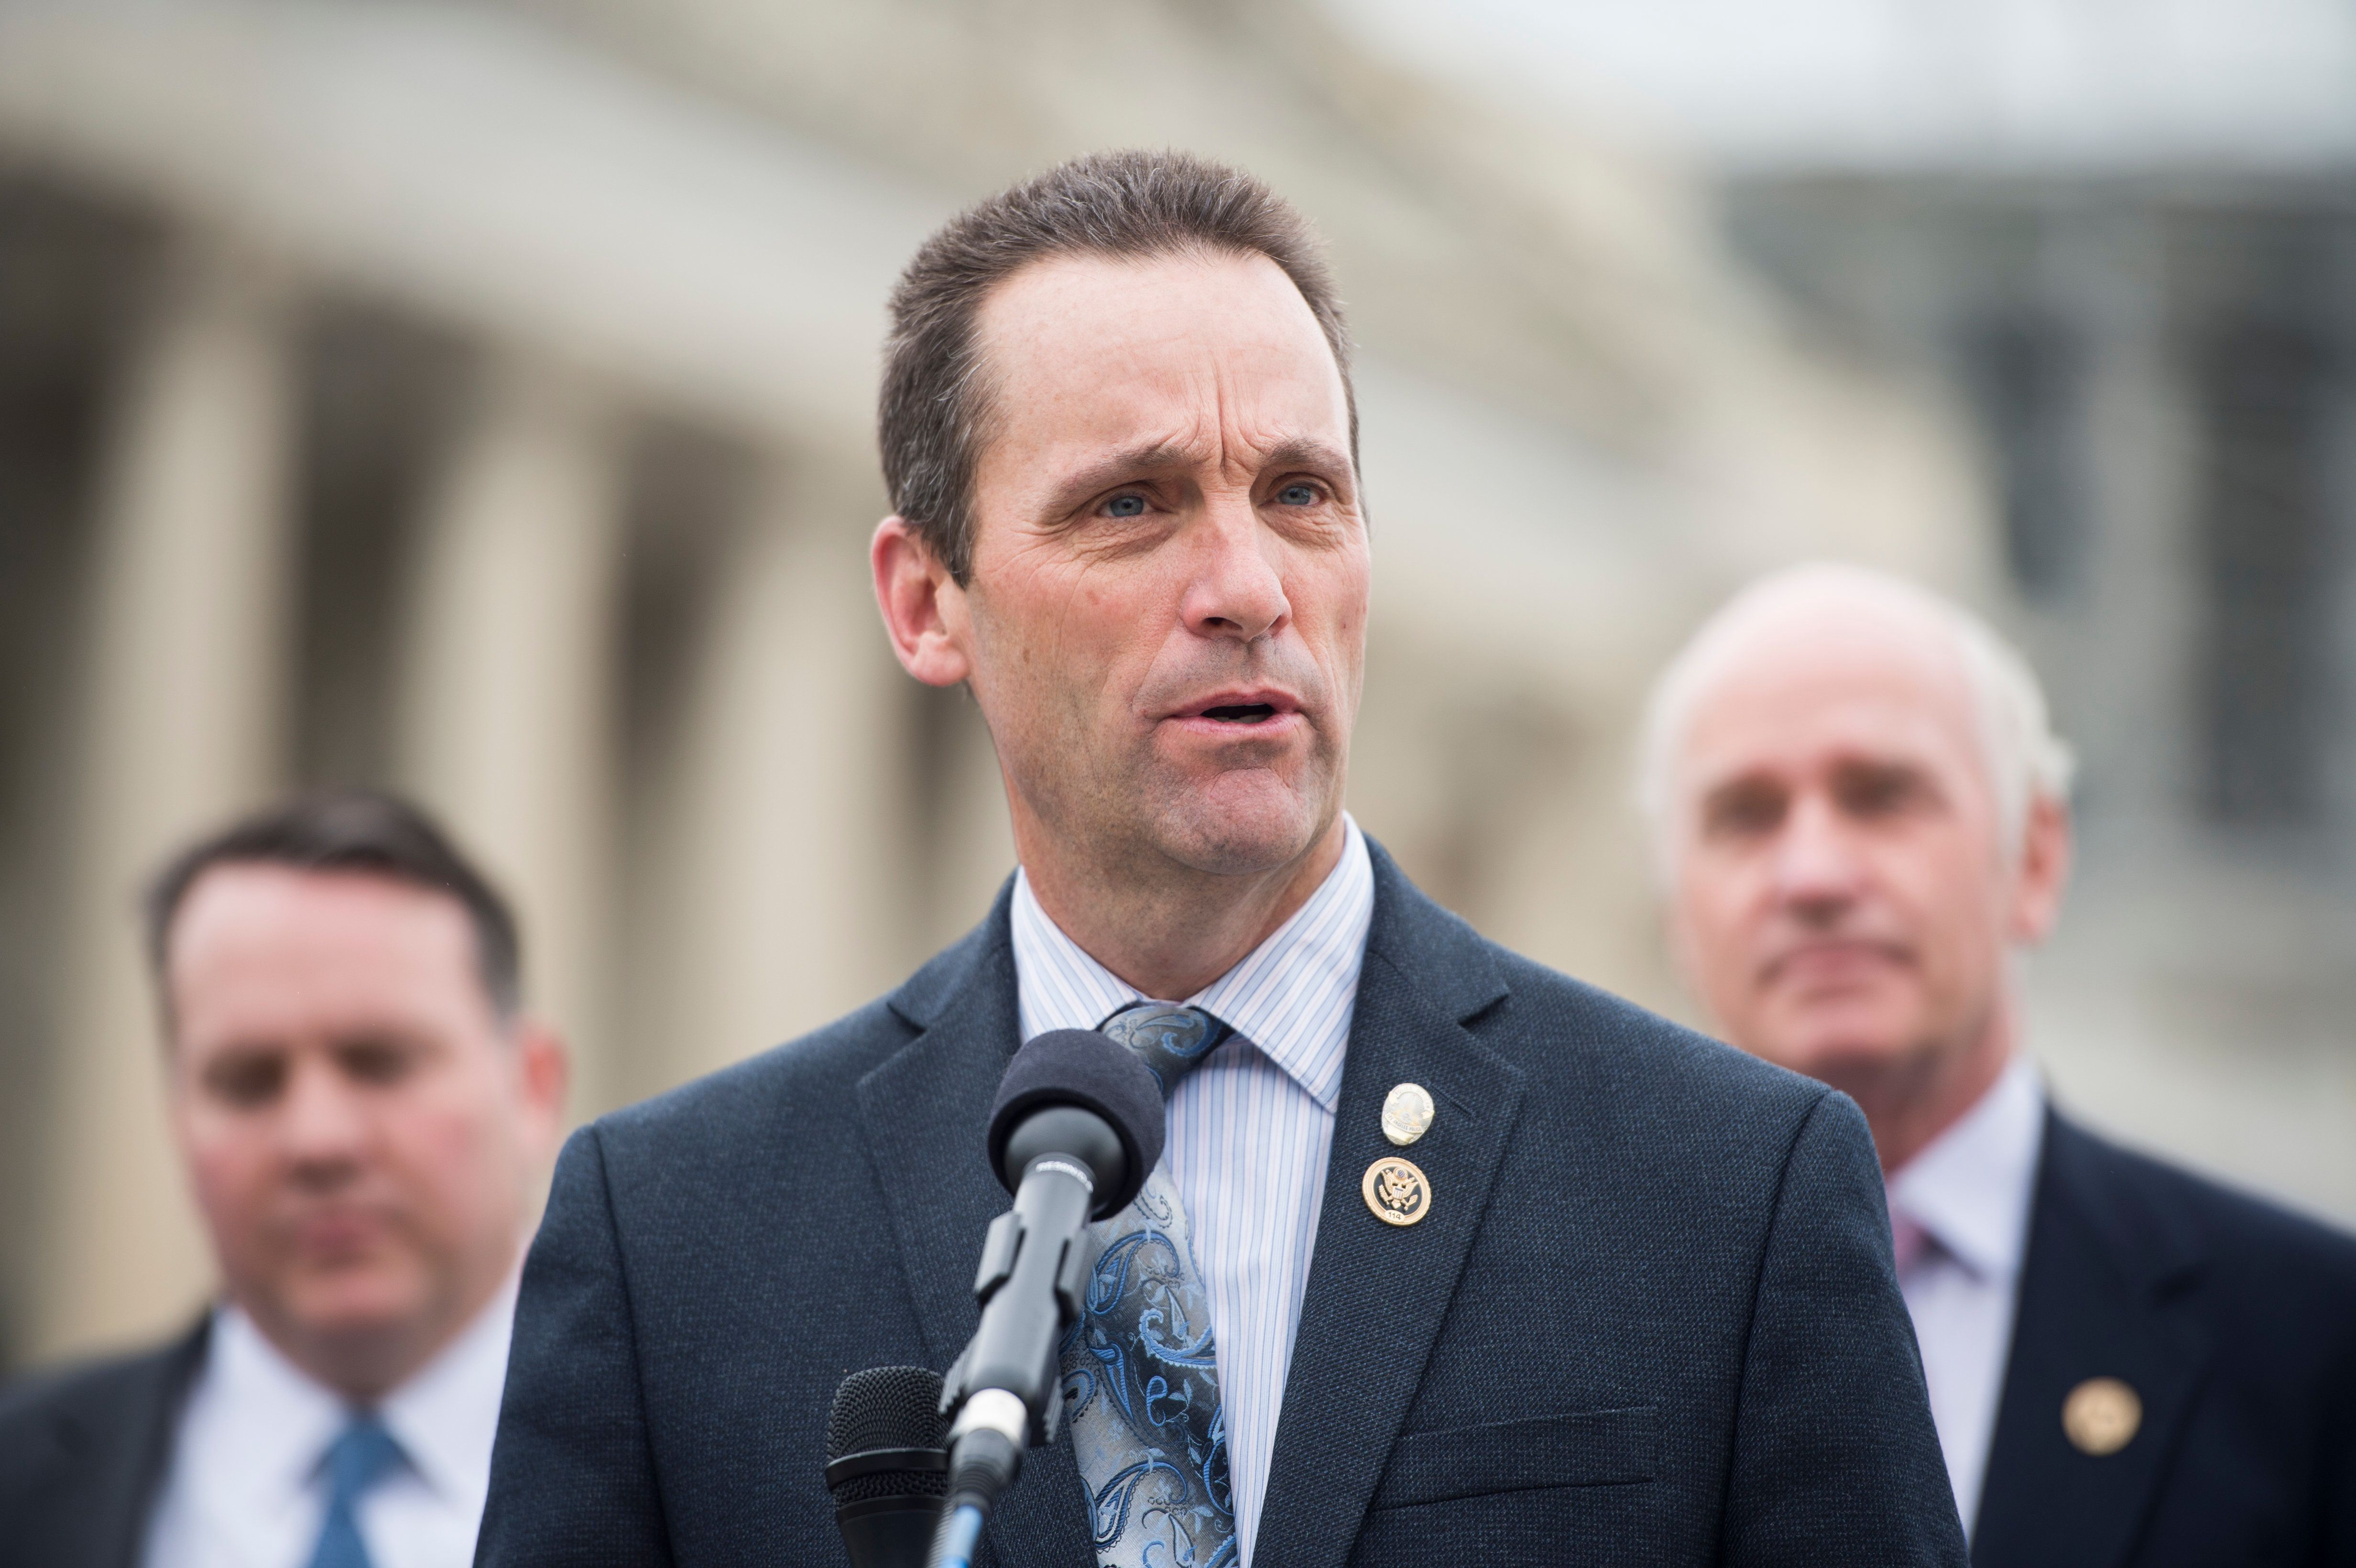 UNITED STATES - APRIL 21: Rep. Steve Knight, R-Calif., speaks during the news conference at the Capitol with other members of the Heroin Task Force on combating heroin abuse on Thursday, April 21, 2016. (Photo By Bill Clark/CQ Roll Call)